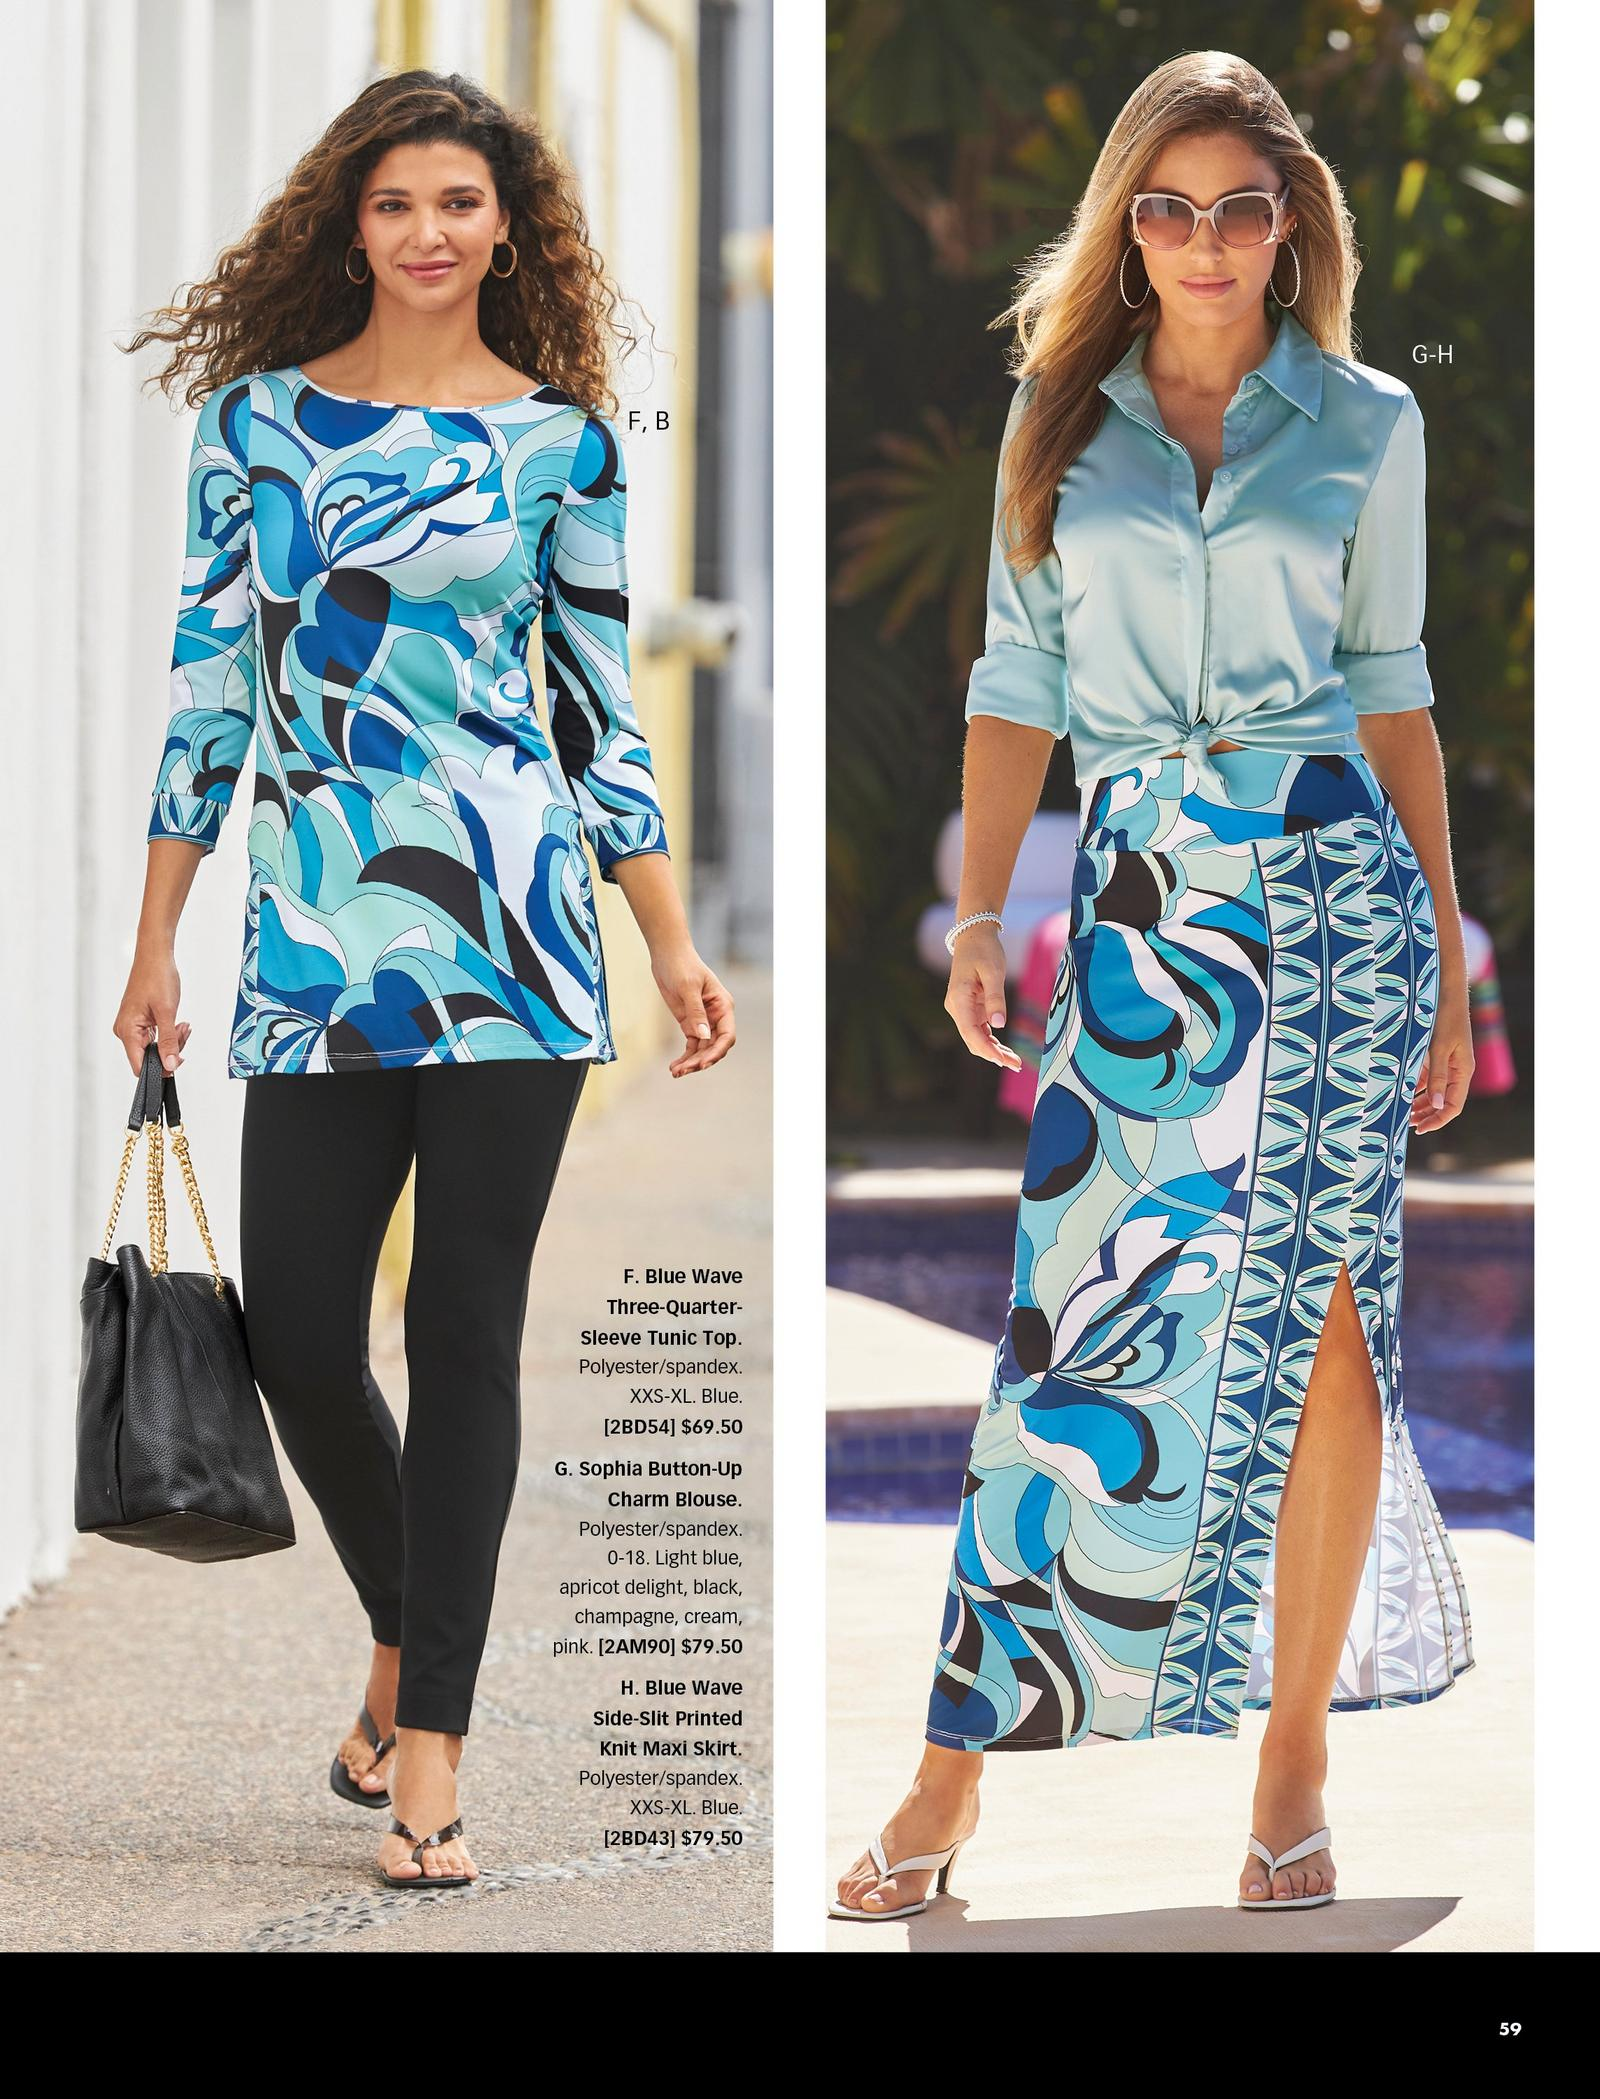 left model wearing a blue printed wide neck three-quarter sleeve top, black leggings, black sandals, and black bags. right model wearing a light blue button down top, blue printed side-slit maxi skirt, white sandals, sunglasses, and hoop earrings.